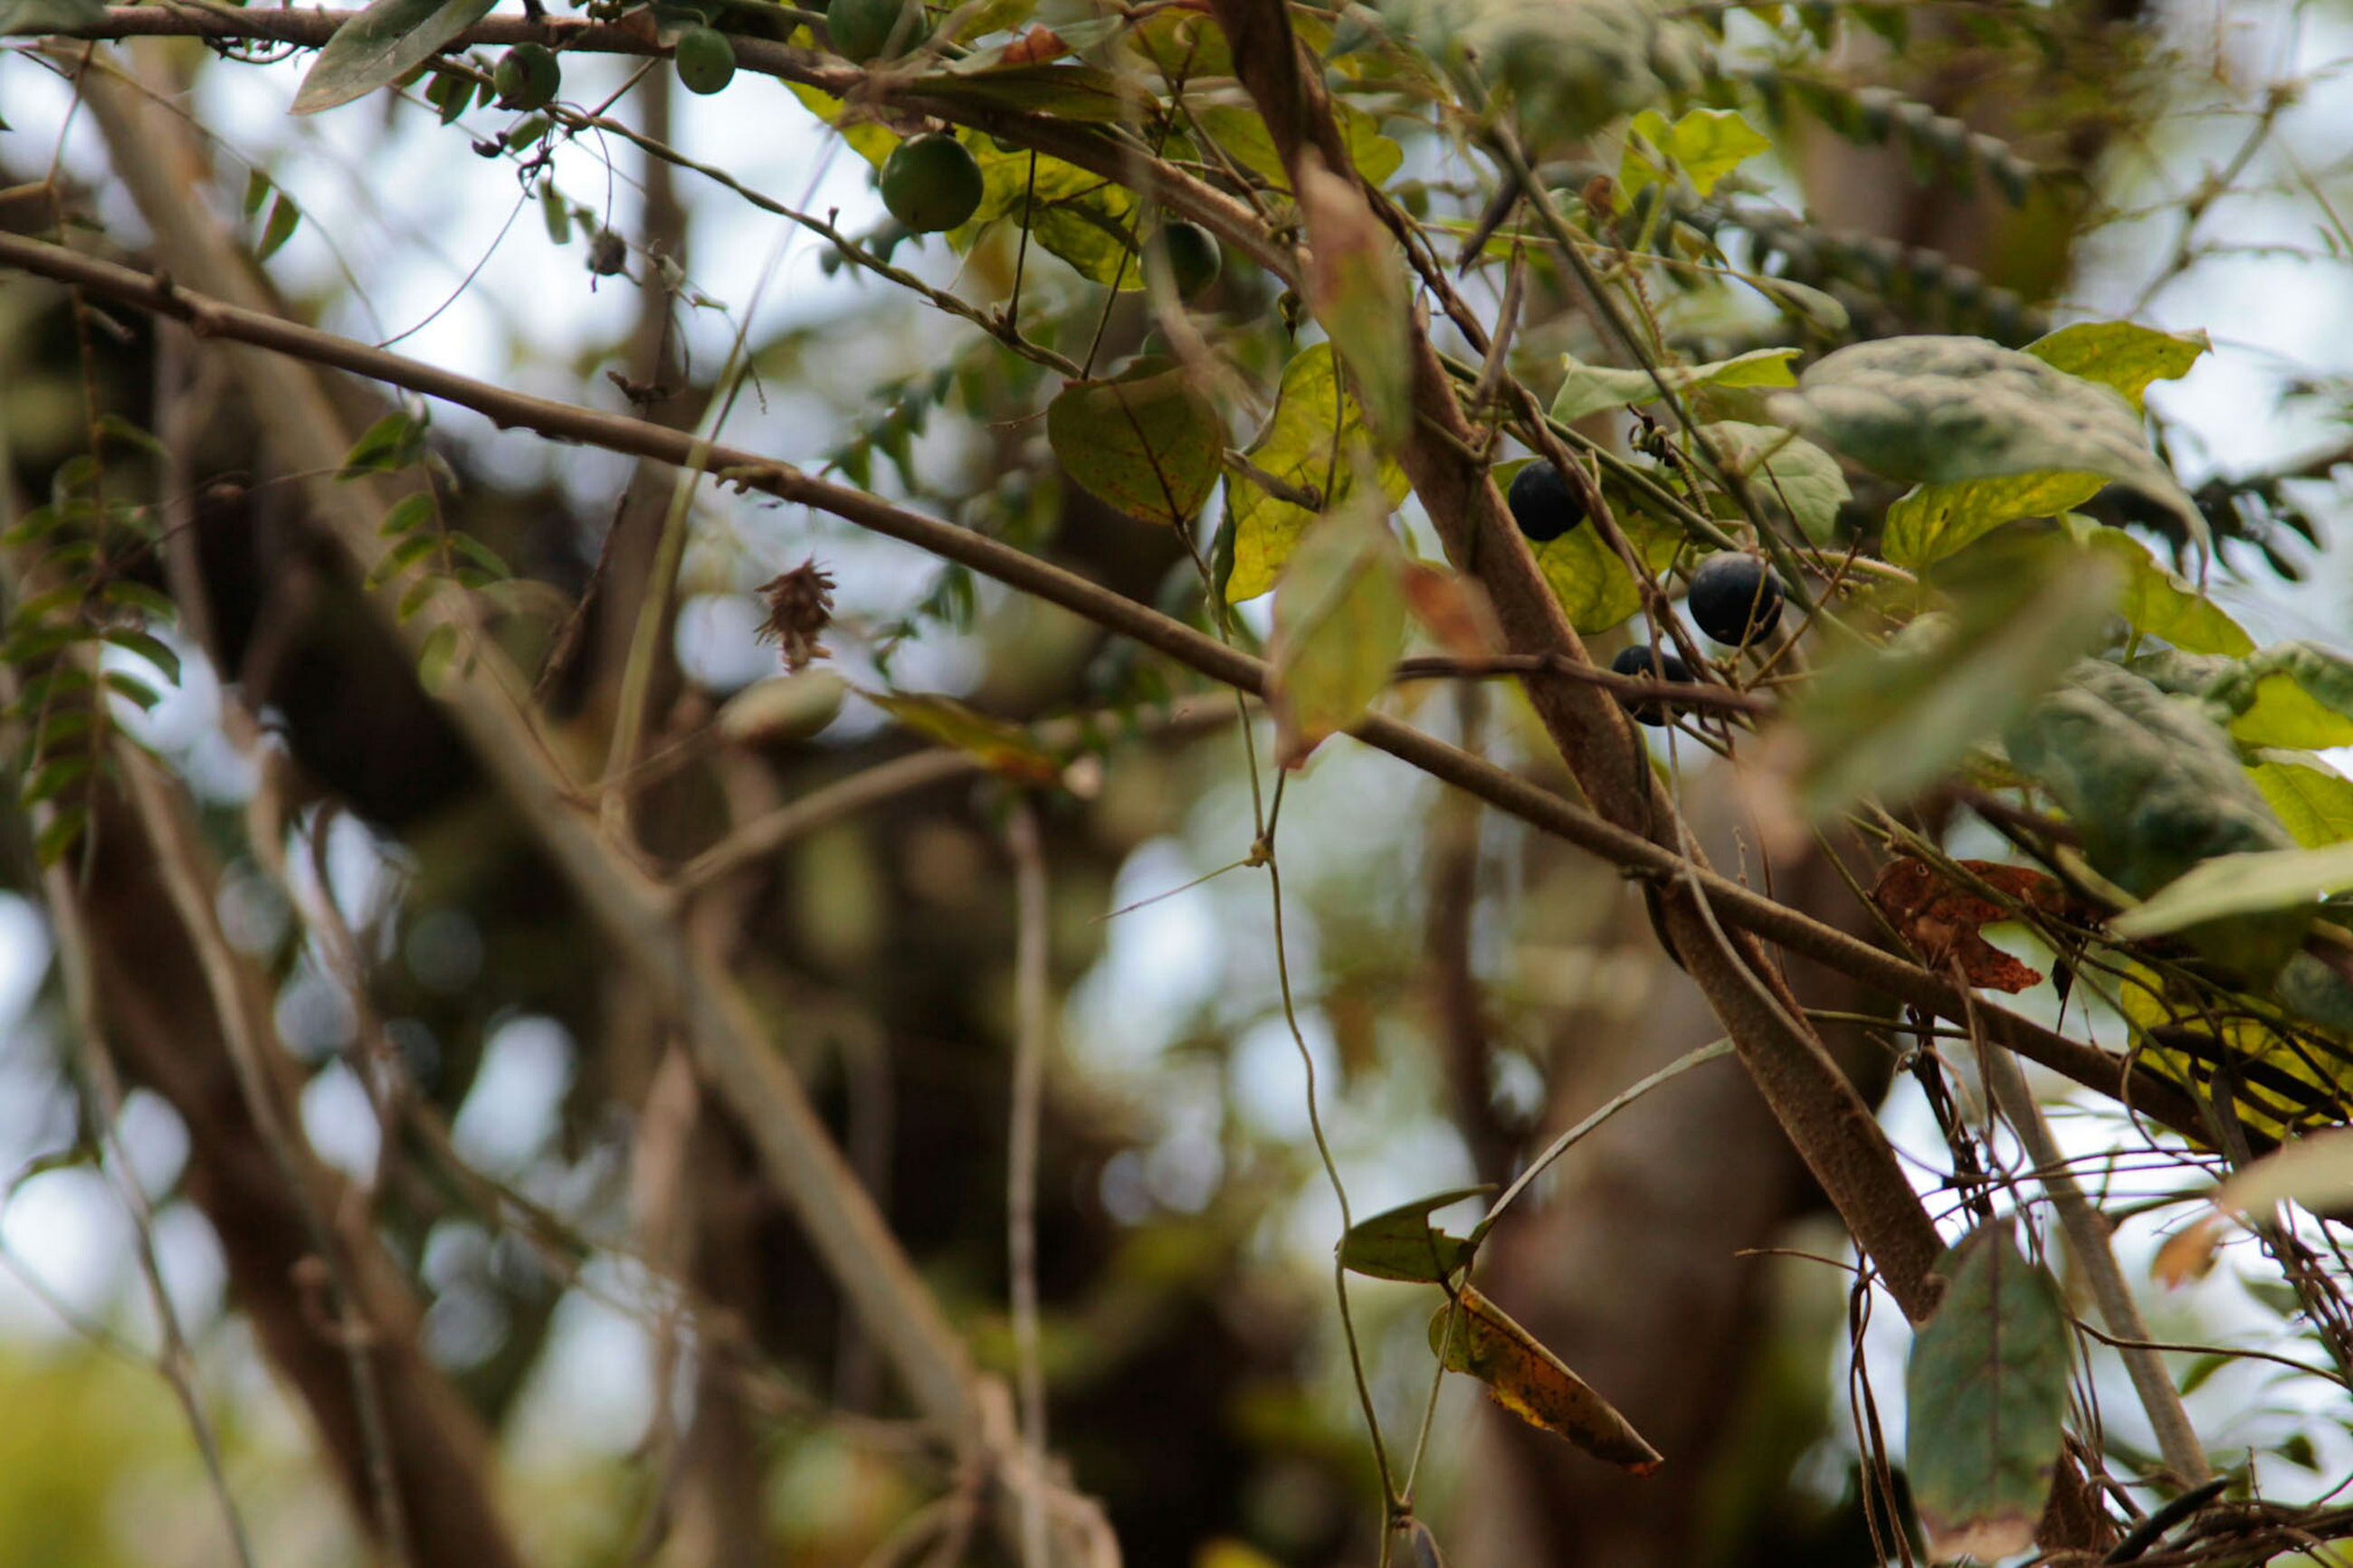 branch, tree, leaf, focus on foreground, growth, close-up, nature, selective focus, twig, low angle view, day, outdoors, animal themes, plant, animals in the wild, beauty in nature, wildlife, no people, green color, fruit